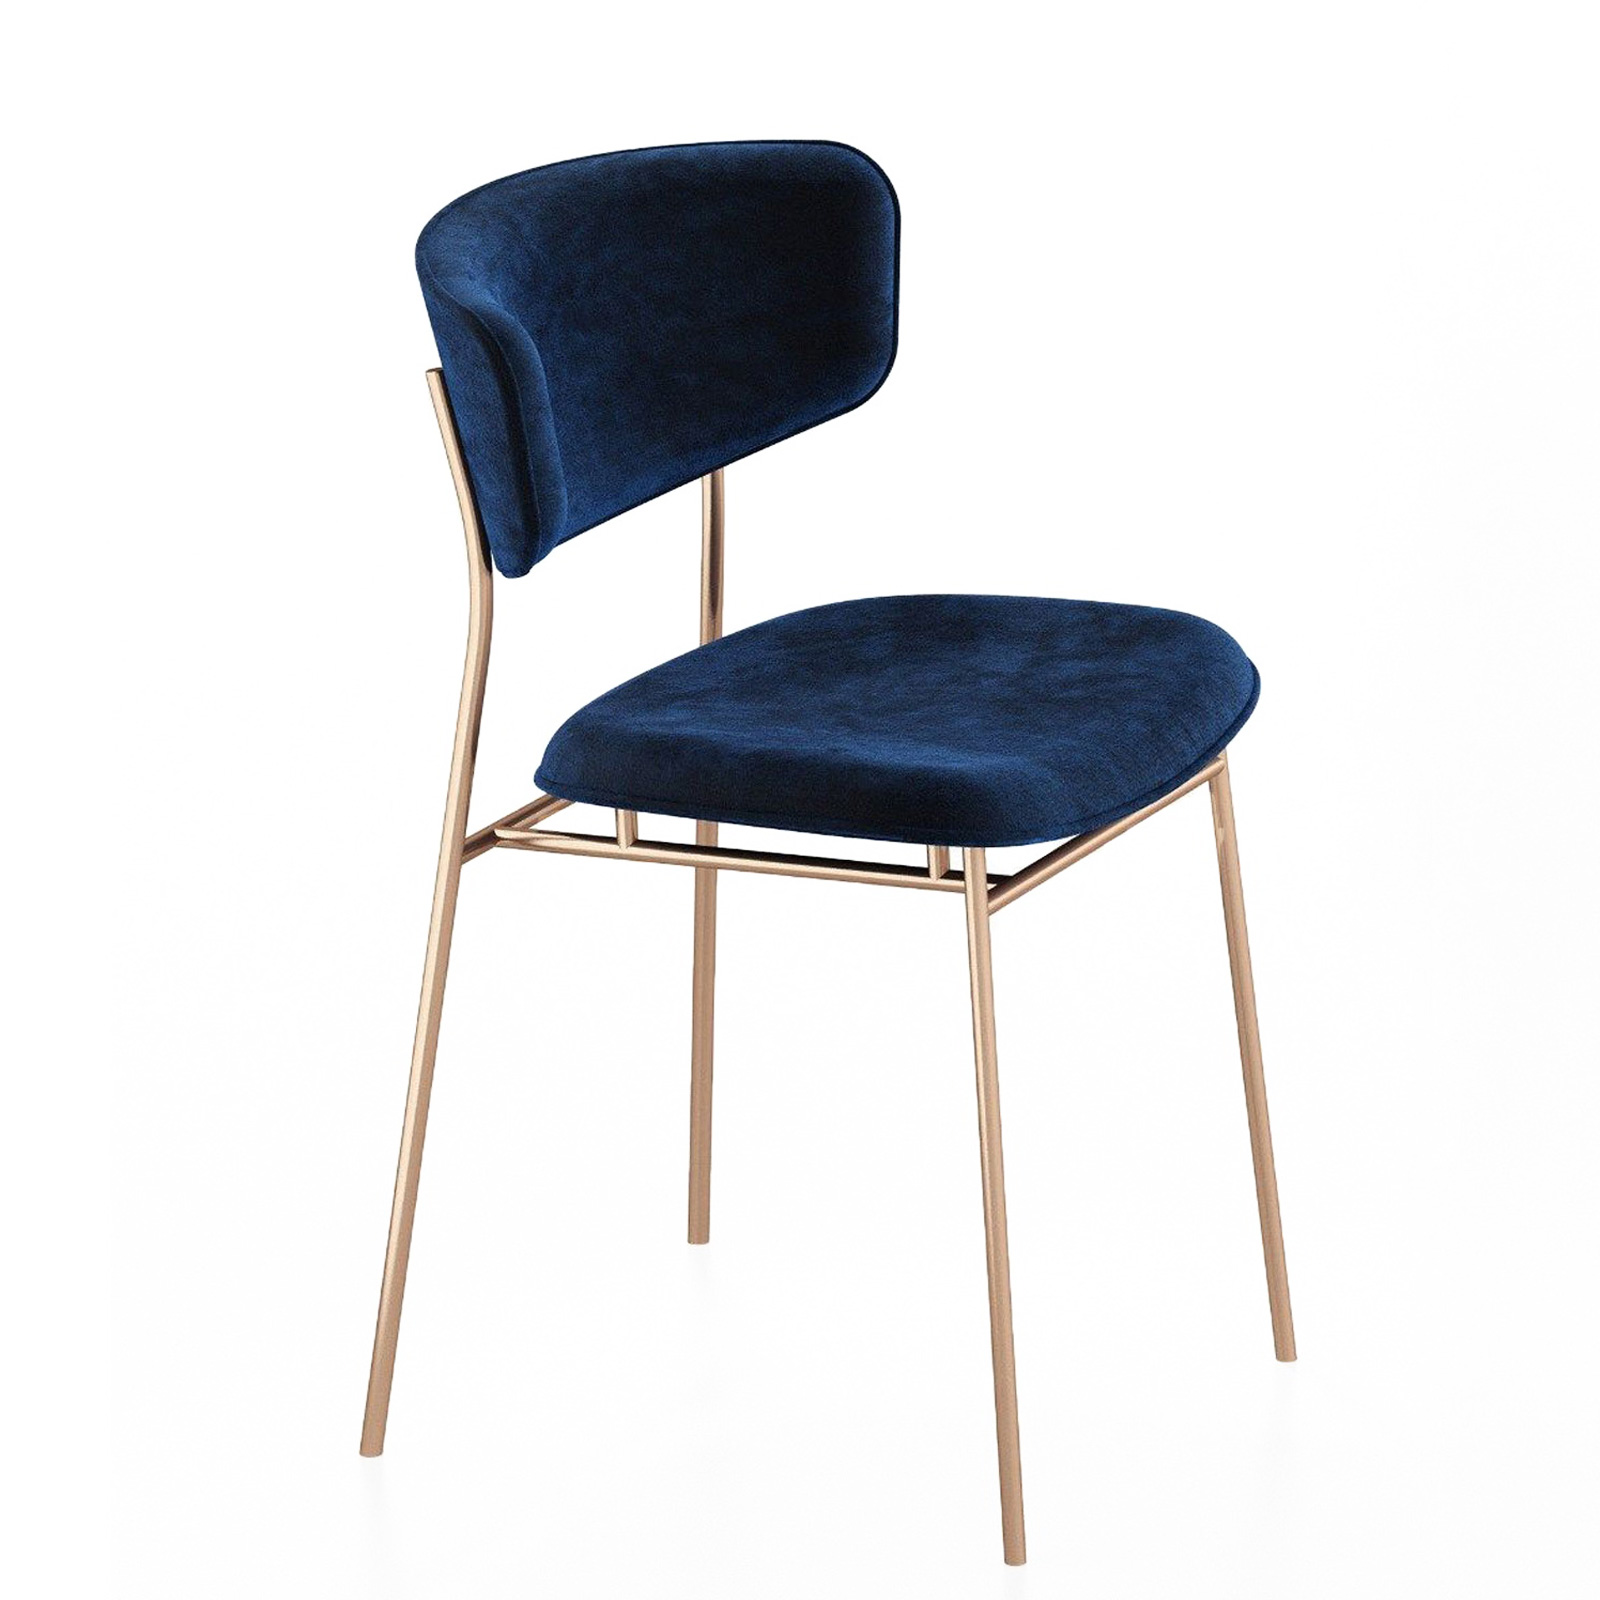 FIFTIES DINING CHAIR By Calligaris  sc 1 st  Core Furniture & FIFTIES DINING CHAIR By Calligaris | Core Furniture Online